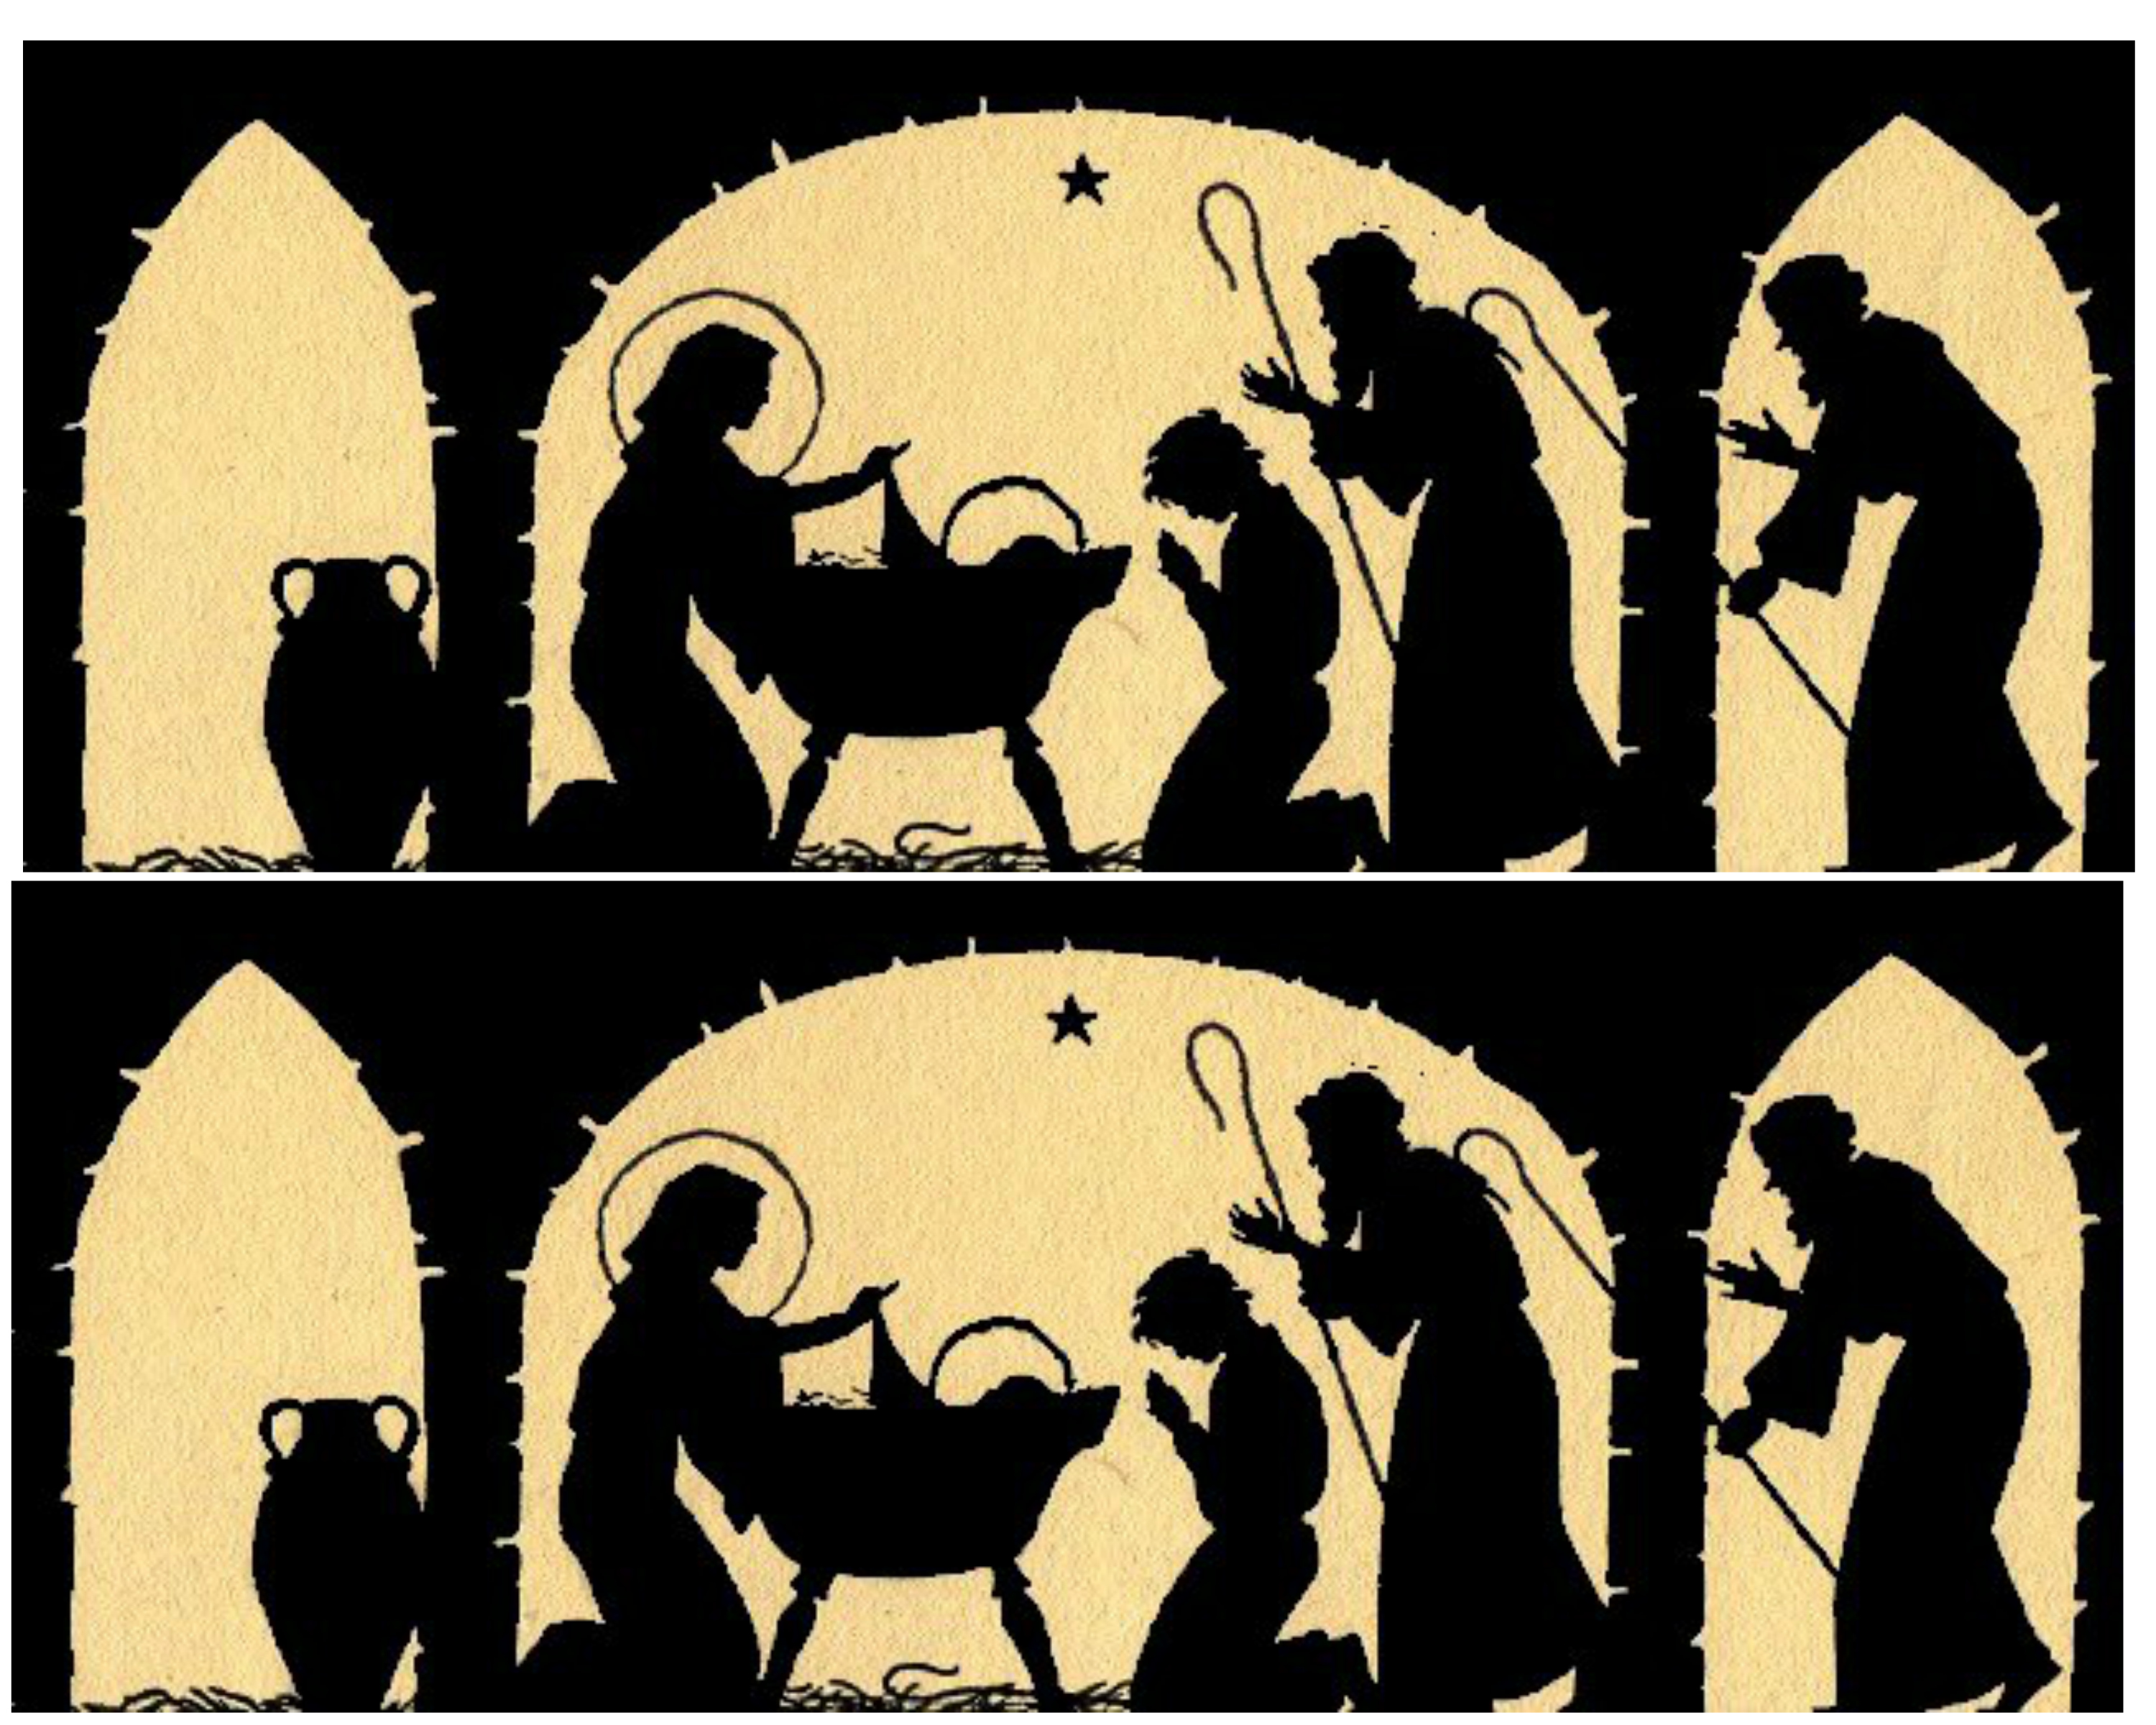 Nativity Silhouette Candle Holder - 12 Days of Christmas {day 3 ...